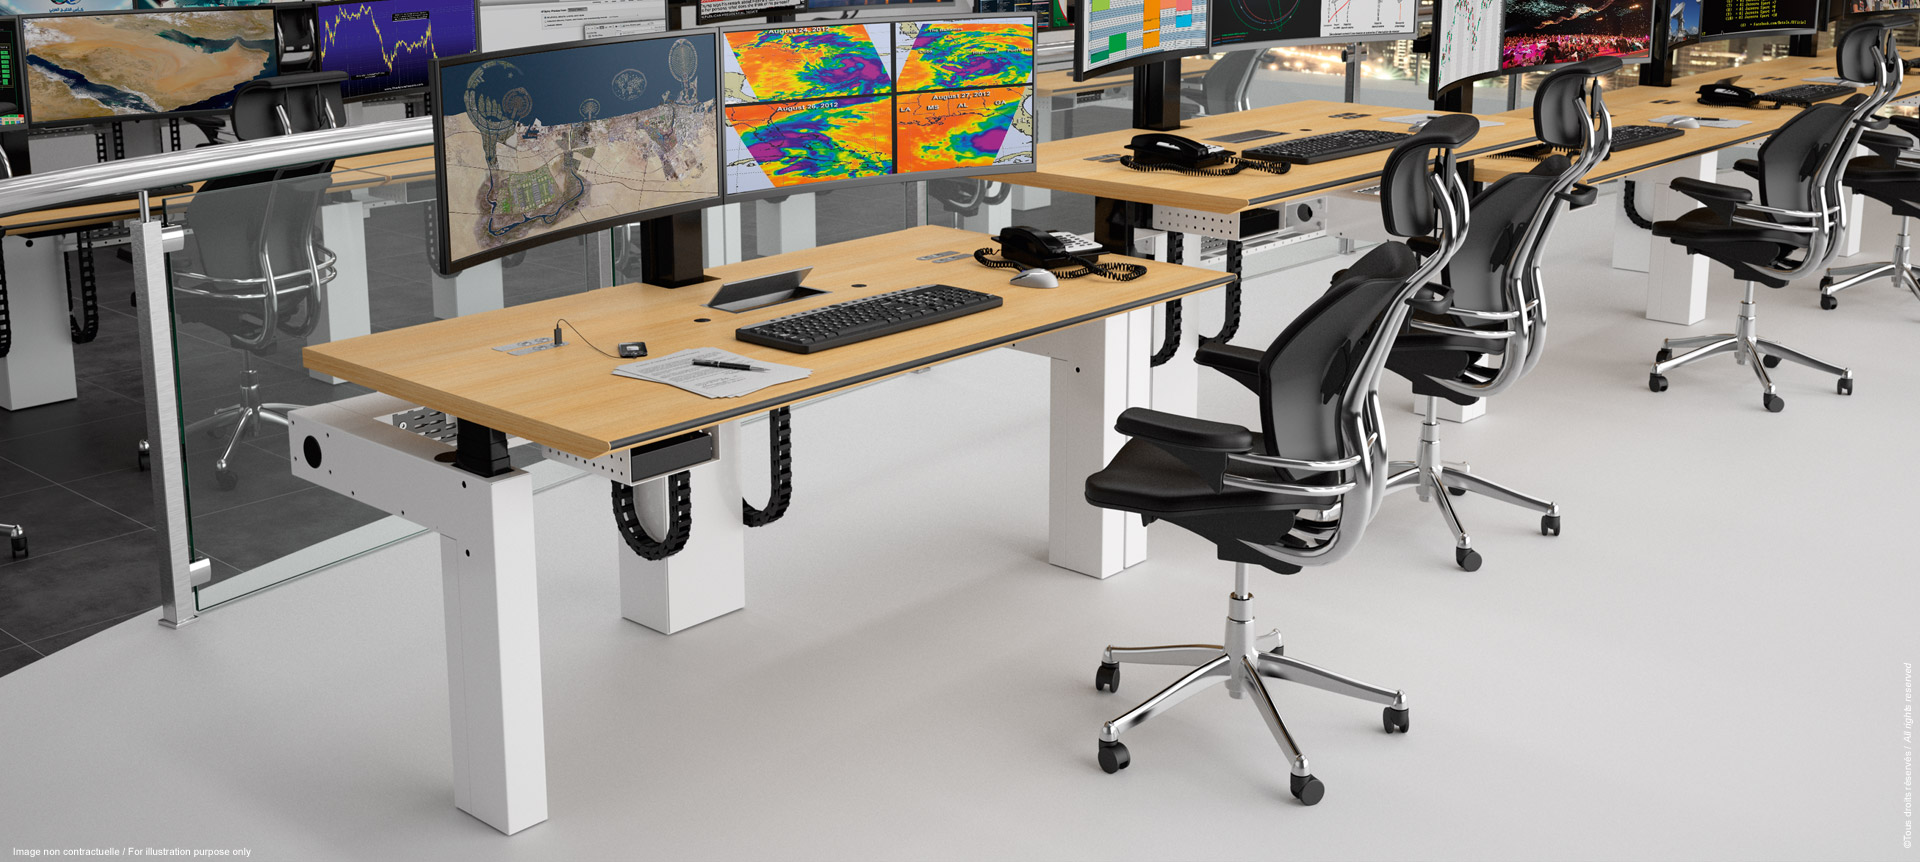 Multiscreen and ergonomic workstation for supervision room